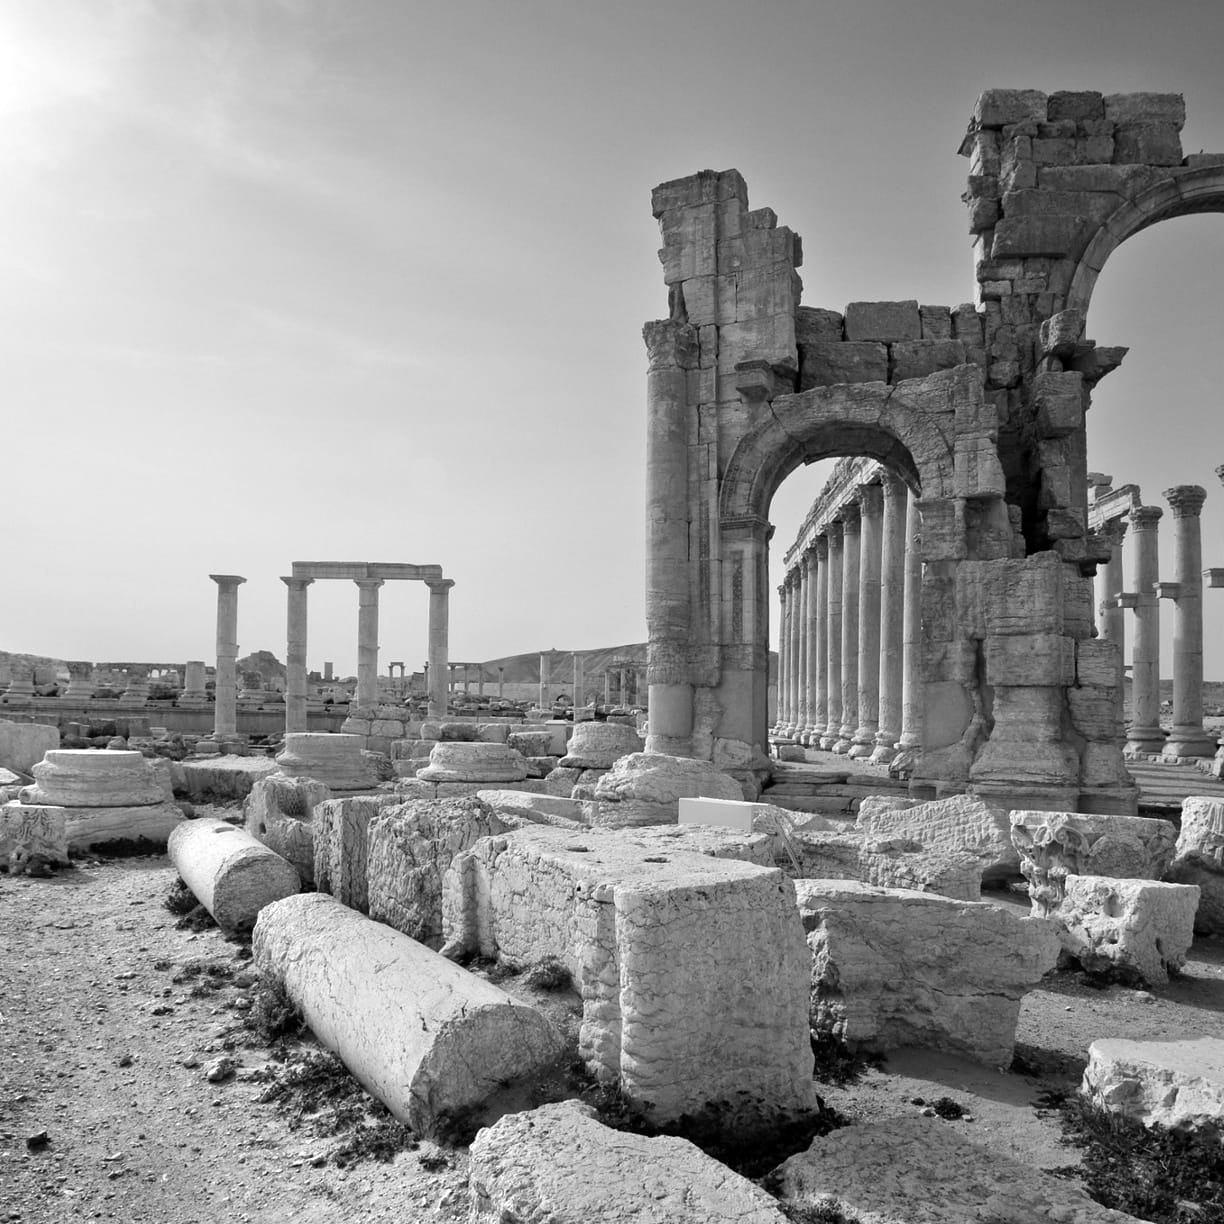 March 13: Preserving the Archaeological Heritage for the Future